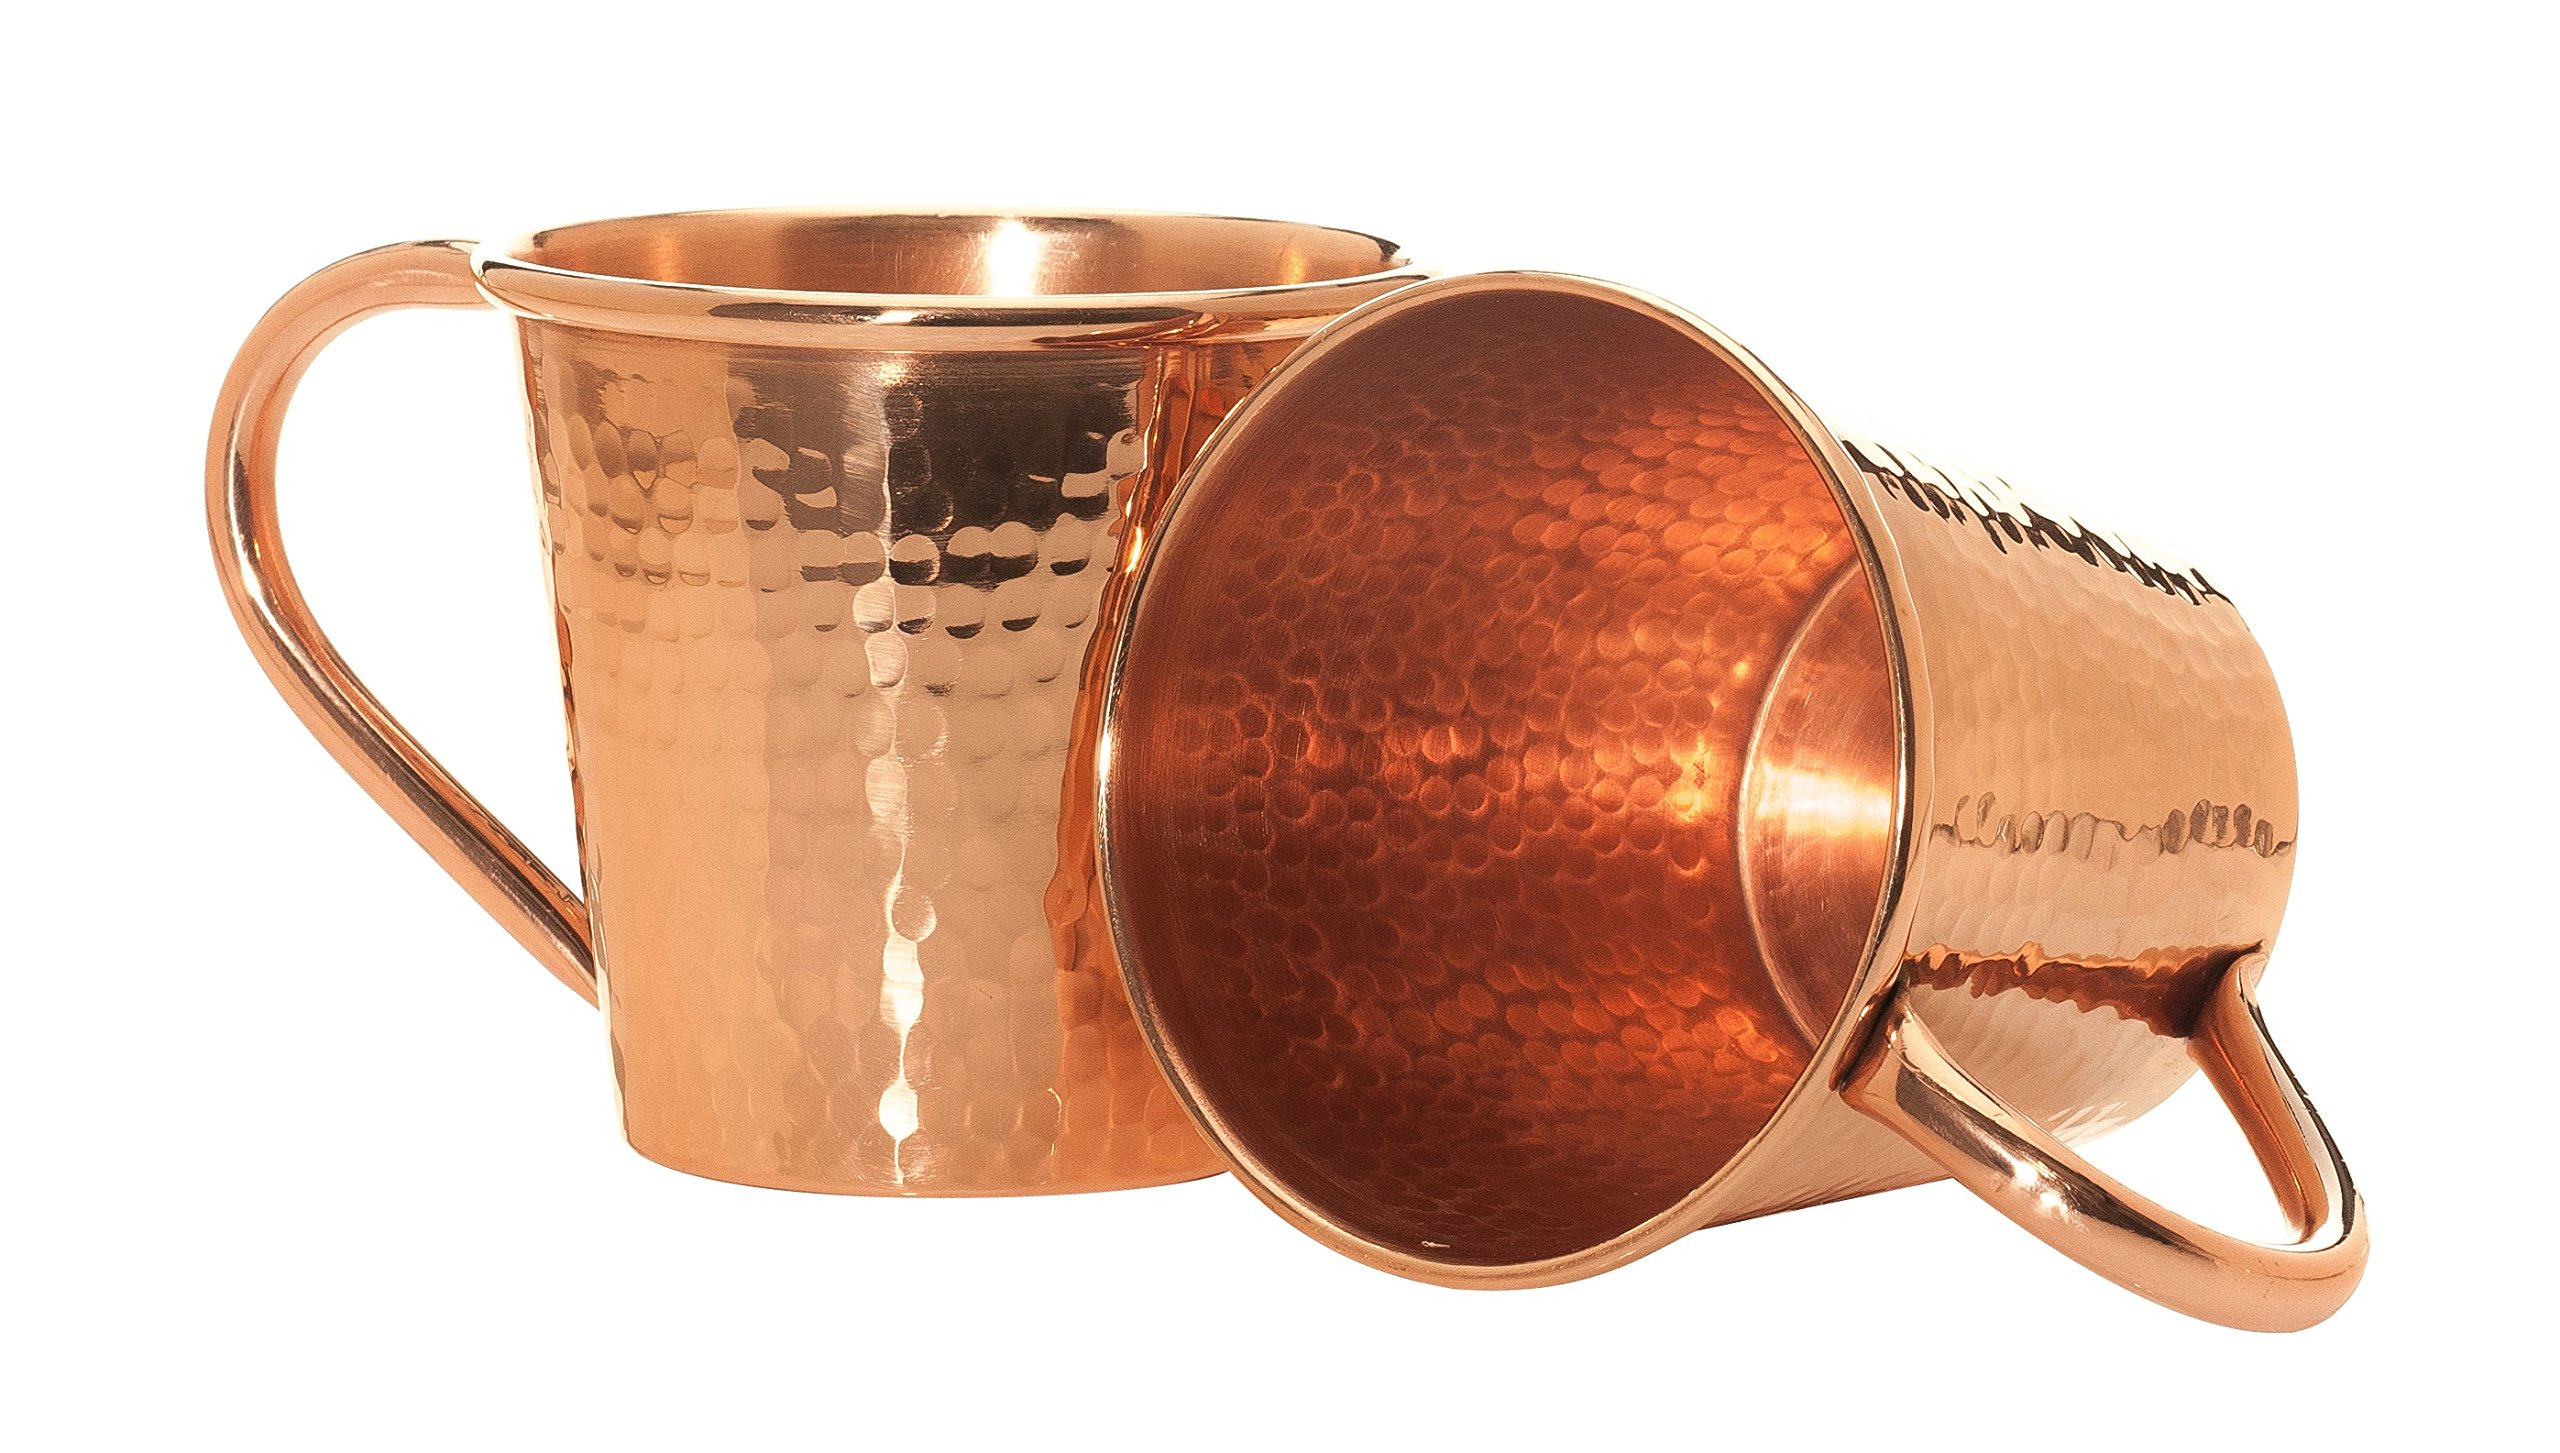 Sertodo Copper CMMc-12-2 Moscow Mule Mug, Hand Hammered 100% Pure Copper, 12 oz, Set of 2